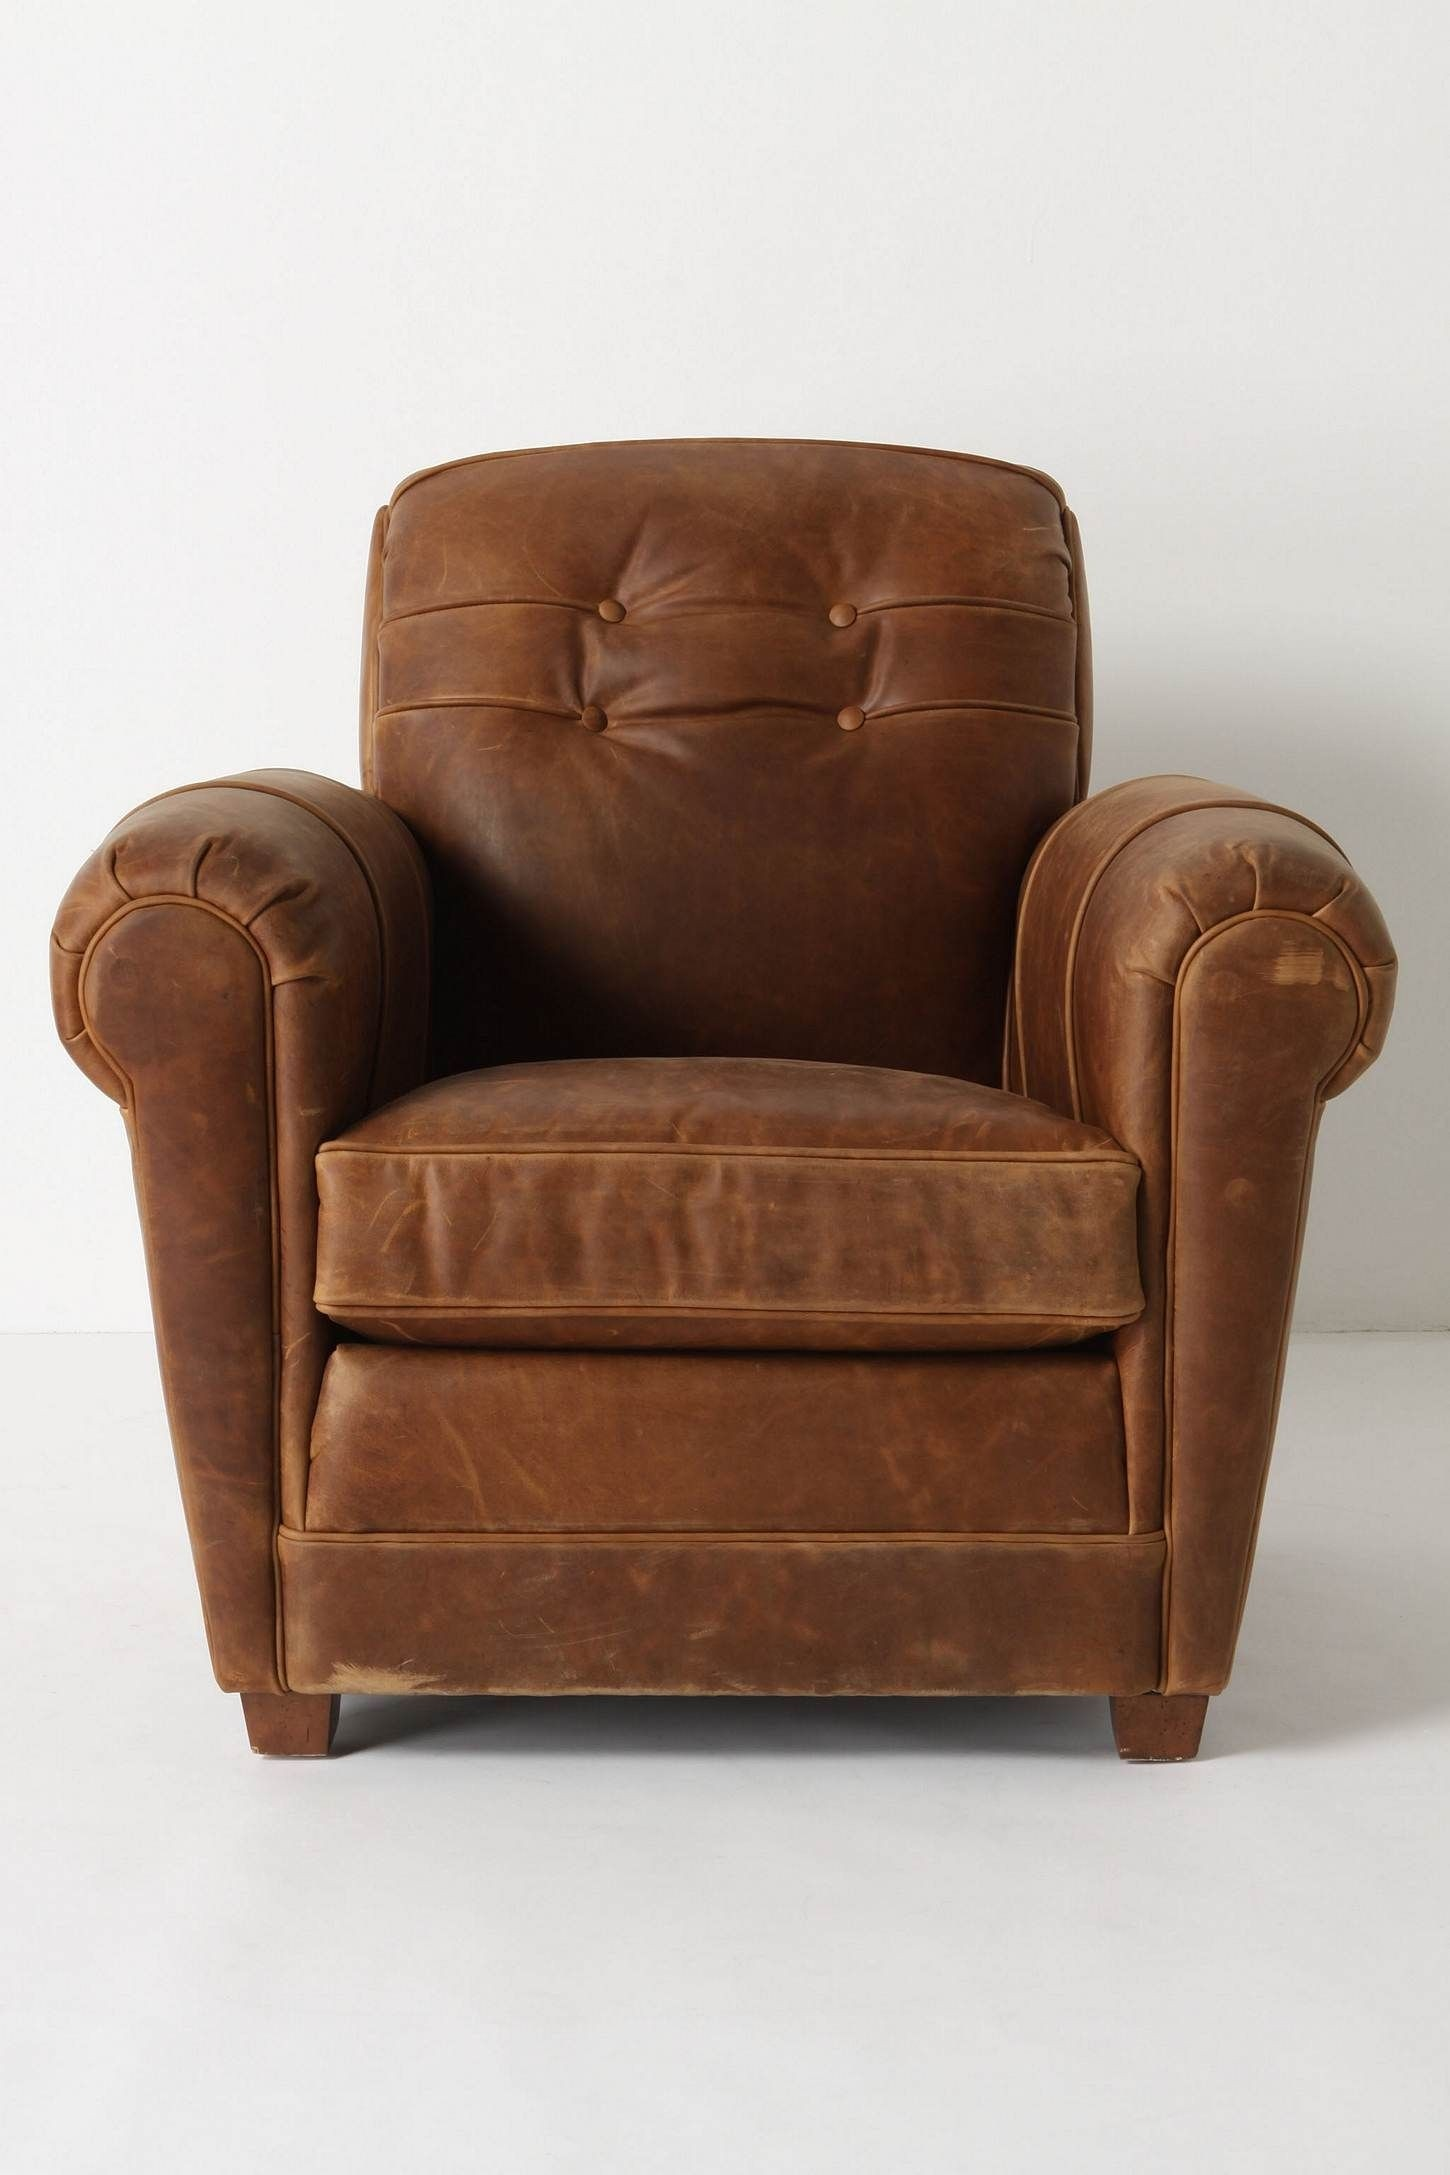 Exceptionnel Small Leather Recliners Chairs